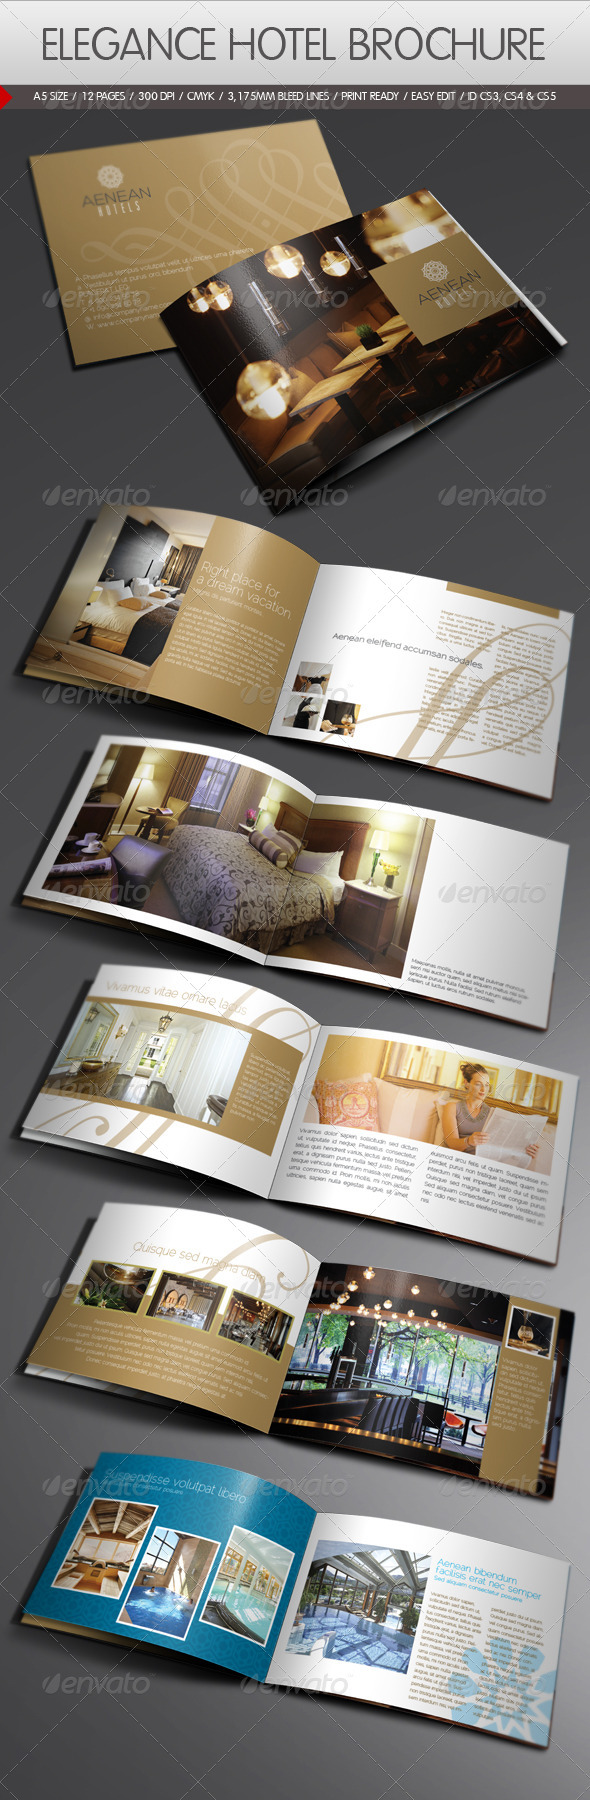 Elegance Hotel Brochure - Corporate Brochures